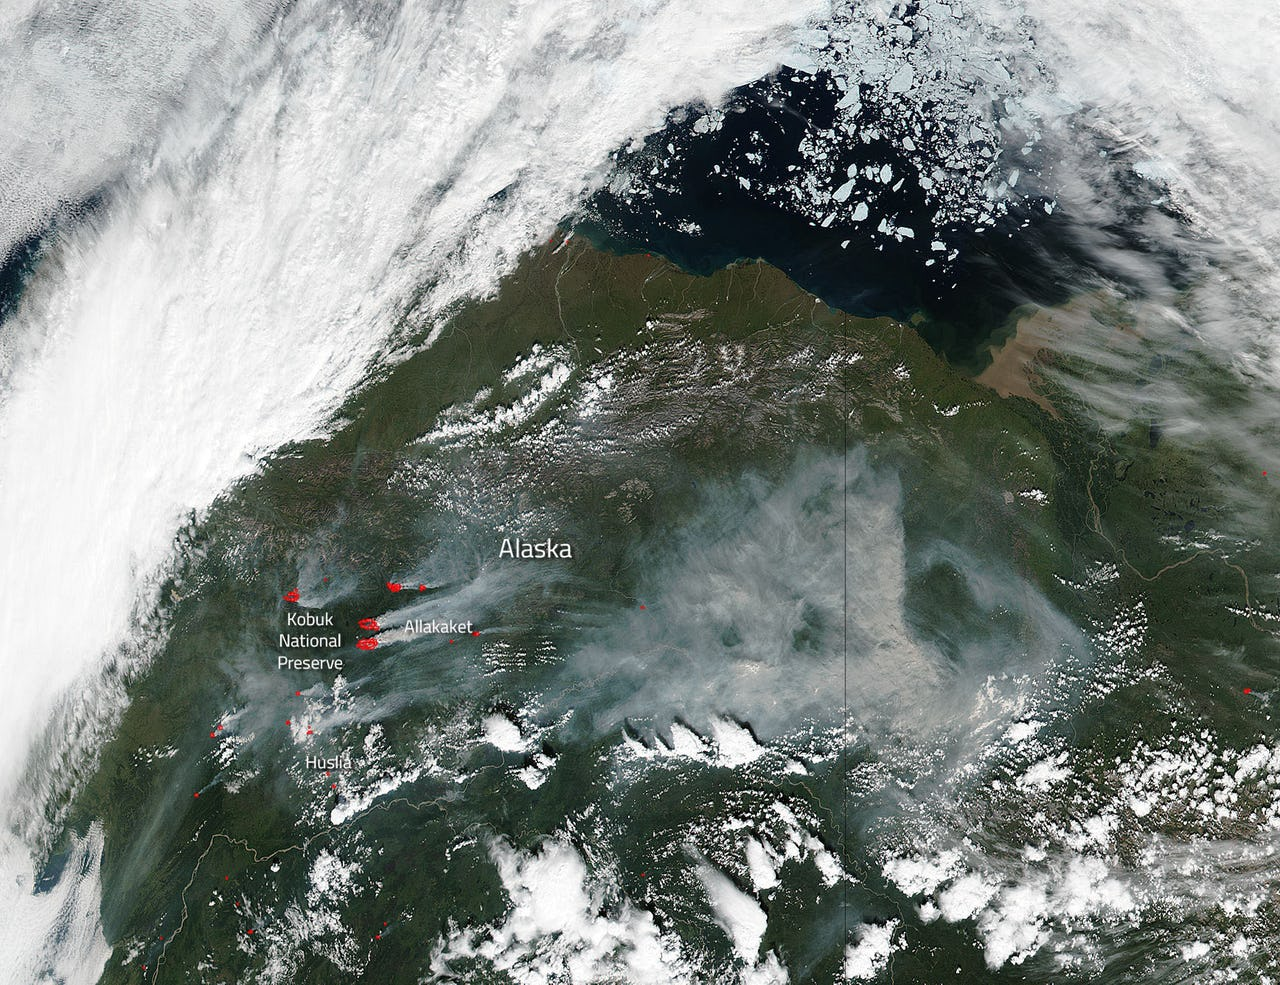 Satellite image showing wildfire in Alaska in 2016